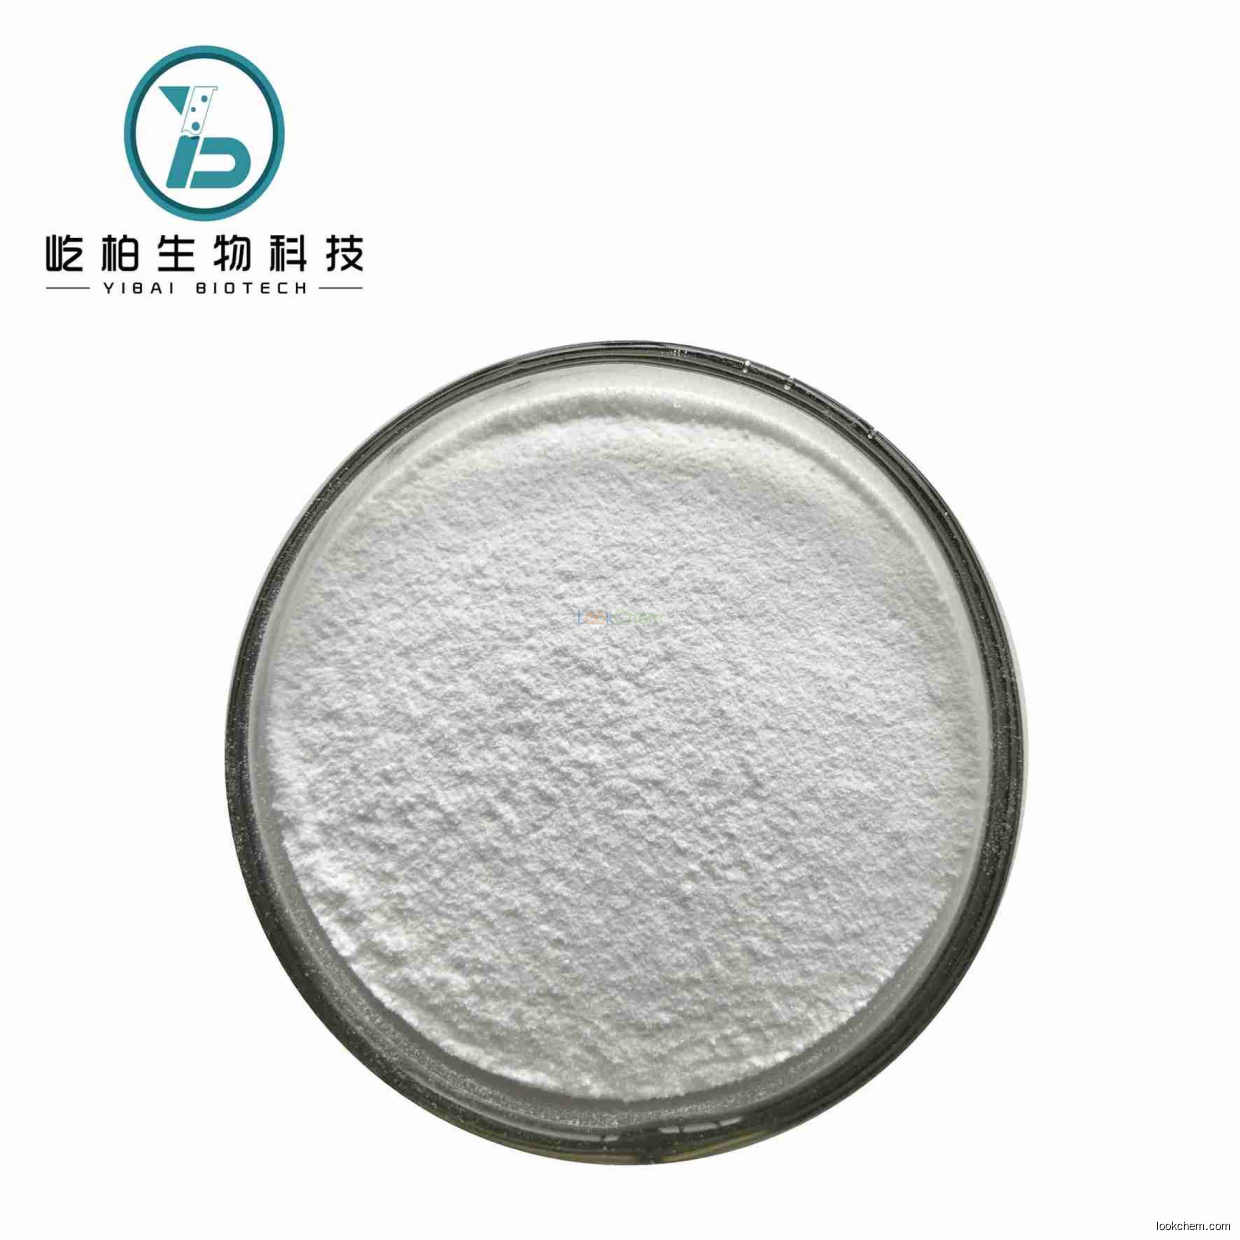 Top Quality Peptide Powder CJC-1295 (Without DAC)